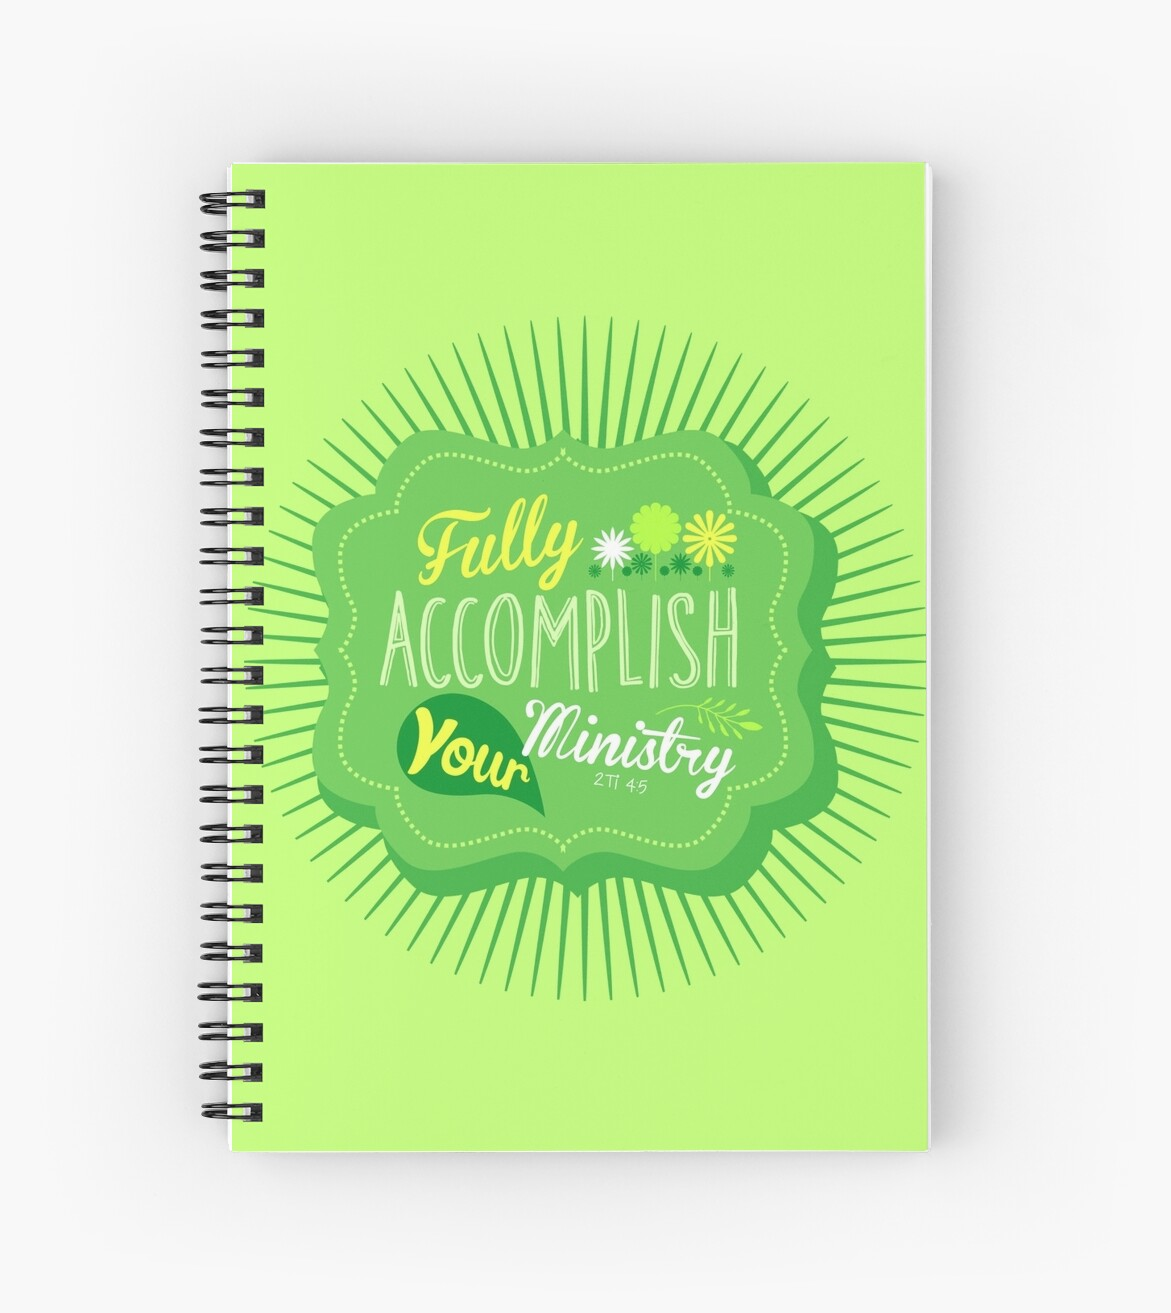 Fully Accomplish Your Ministry (Green) by JW ARTS & CRAFTS